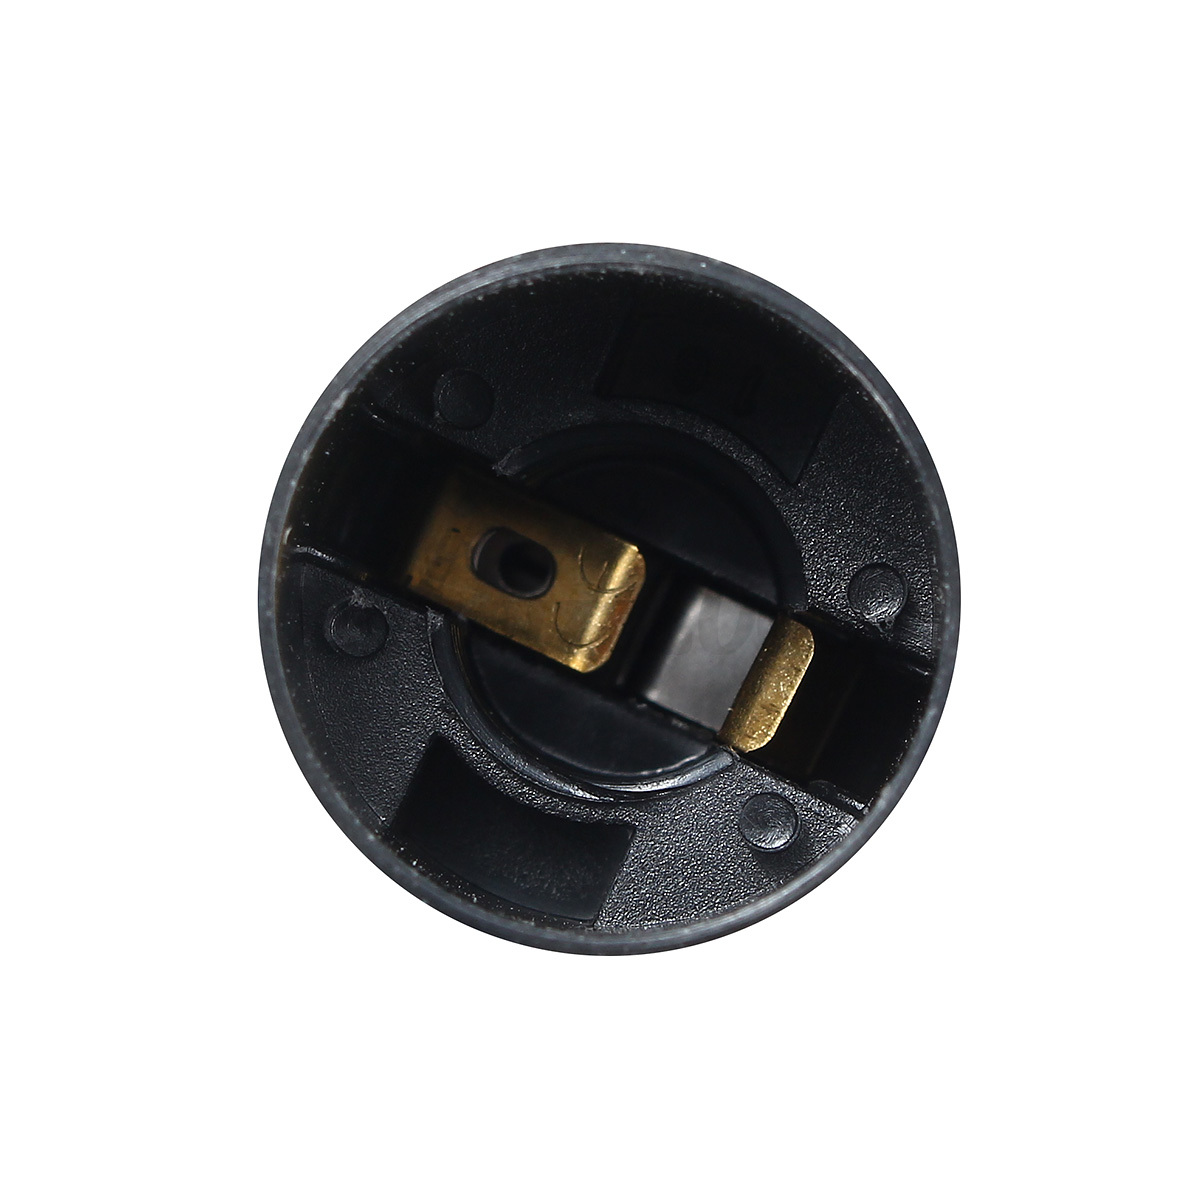 Salt Lamp Electrical Cord : Spring-Loaded Wire Clip Salt Lamp Electrical Cord With Dimmer Switch 1.2M eBay